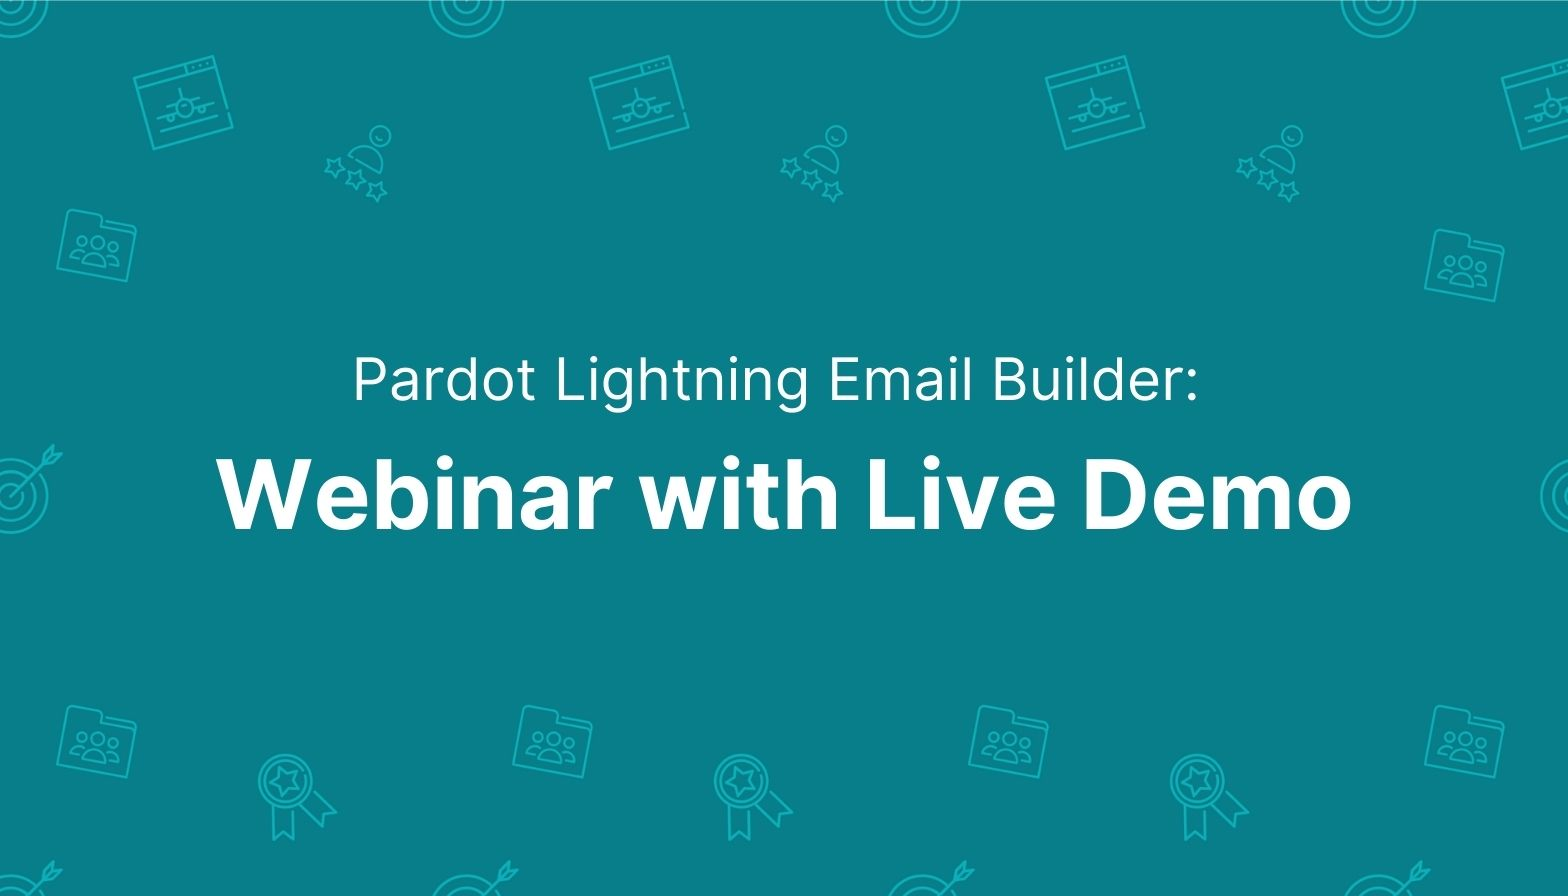 Feature image: Pardot Lightning Email Builder Webinar with live demo